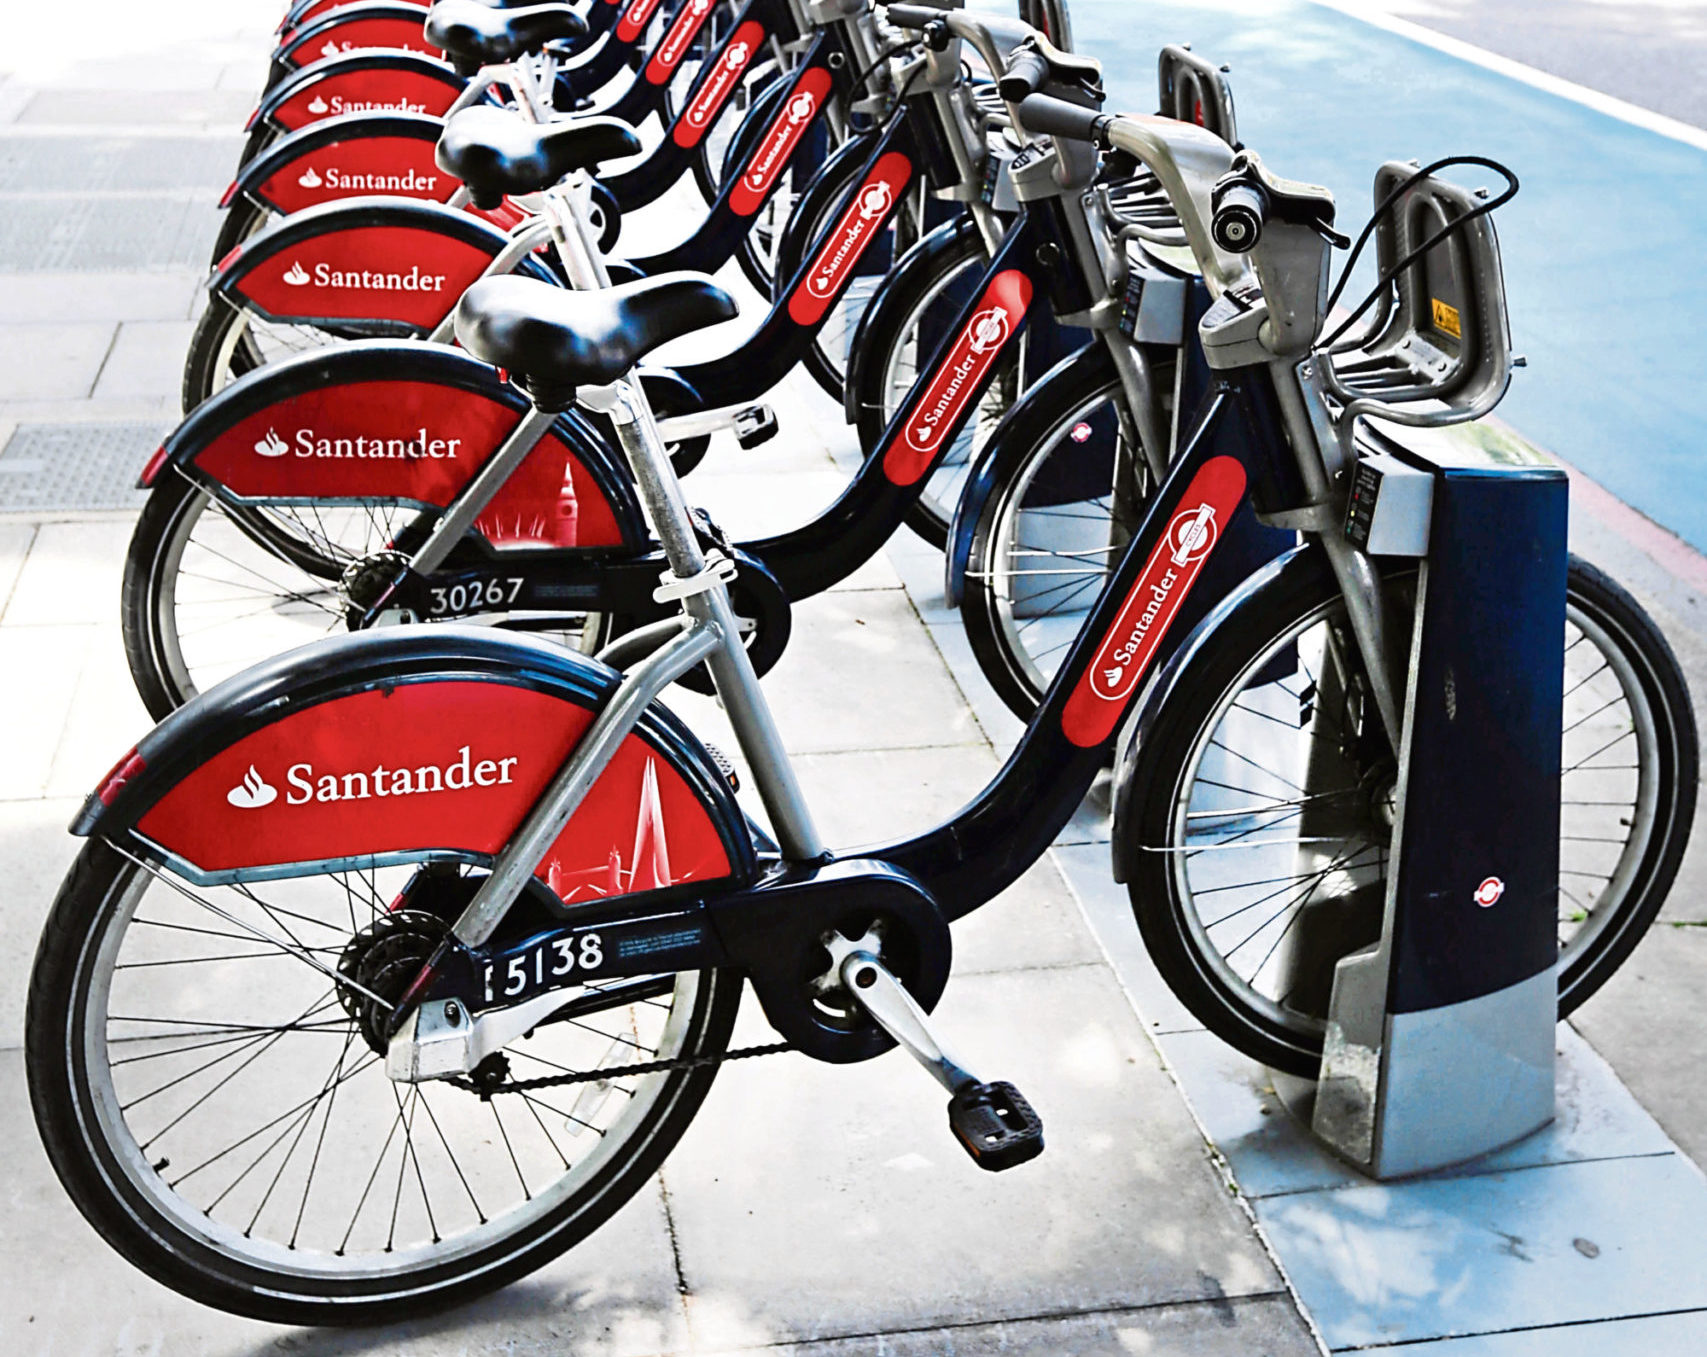 Proposal to introduce hire bikes in Aberdeen skids to halt - Evening Express